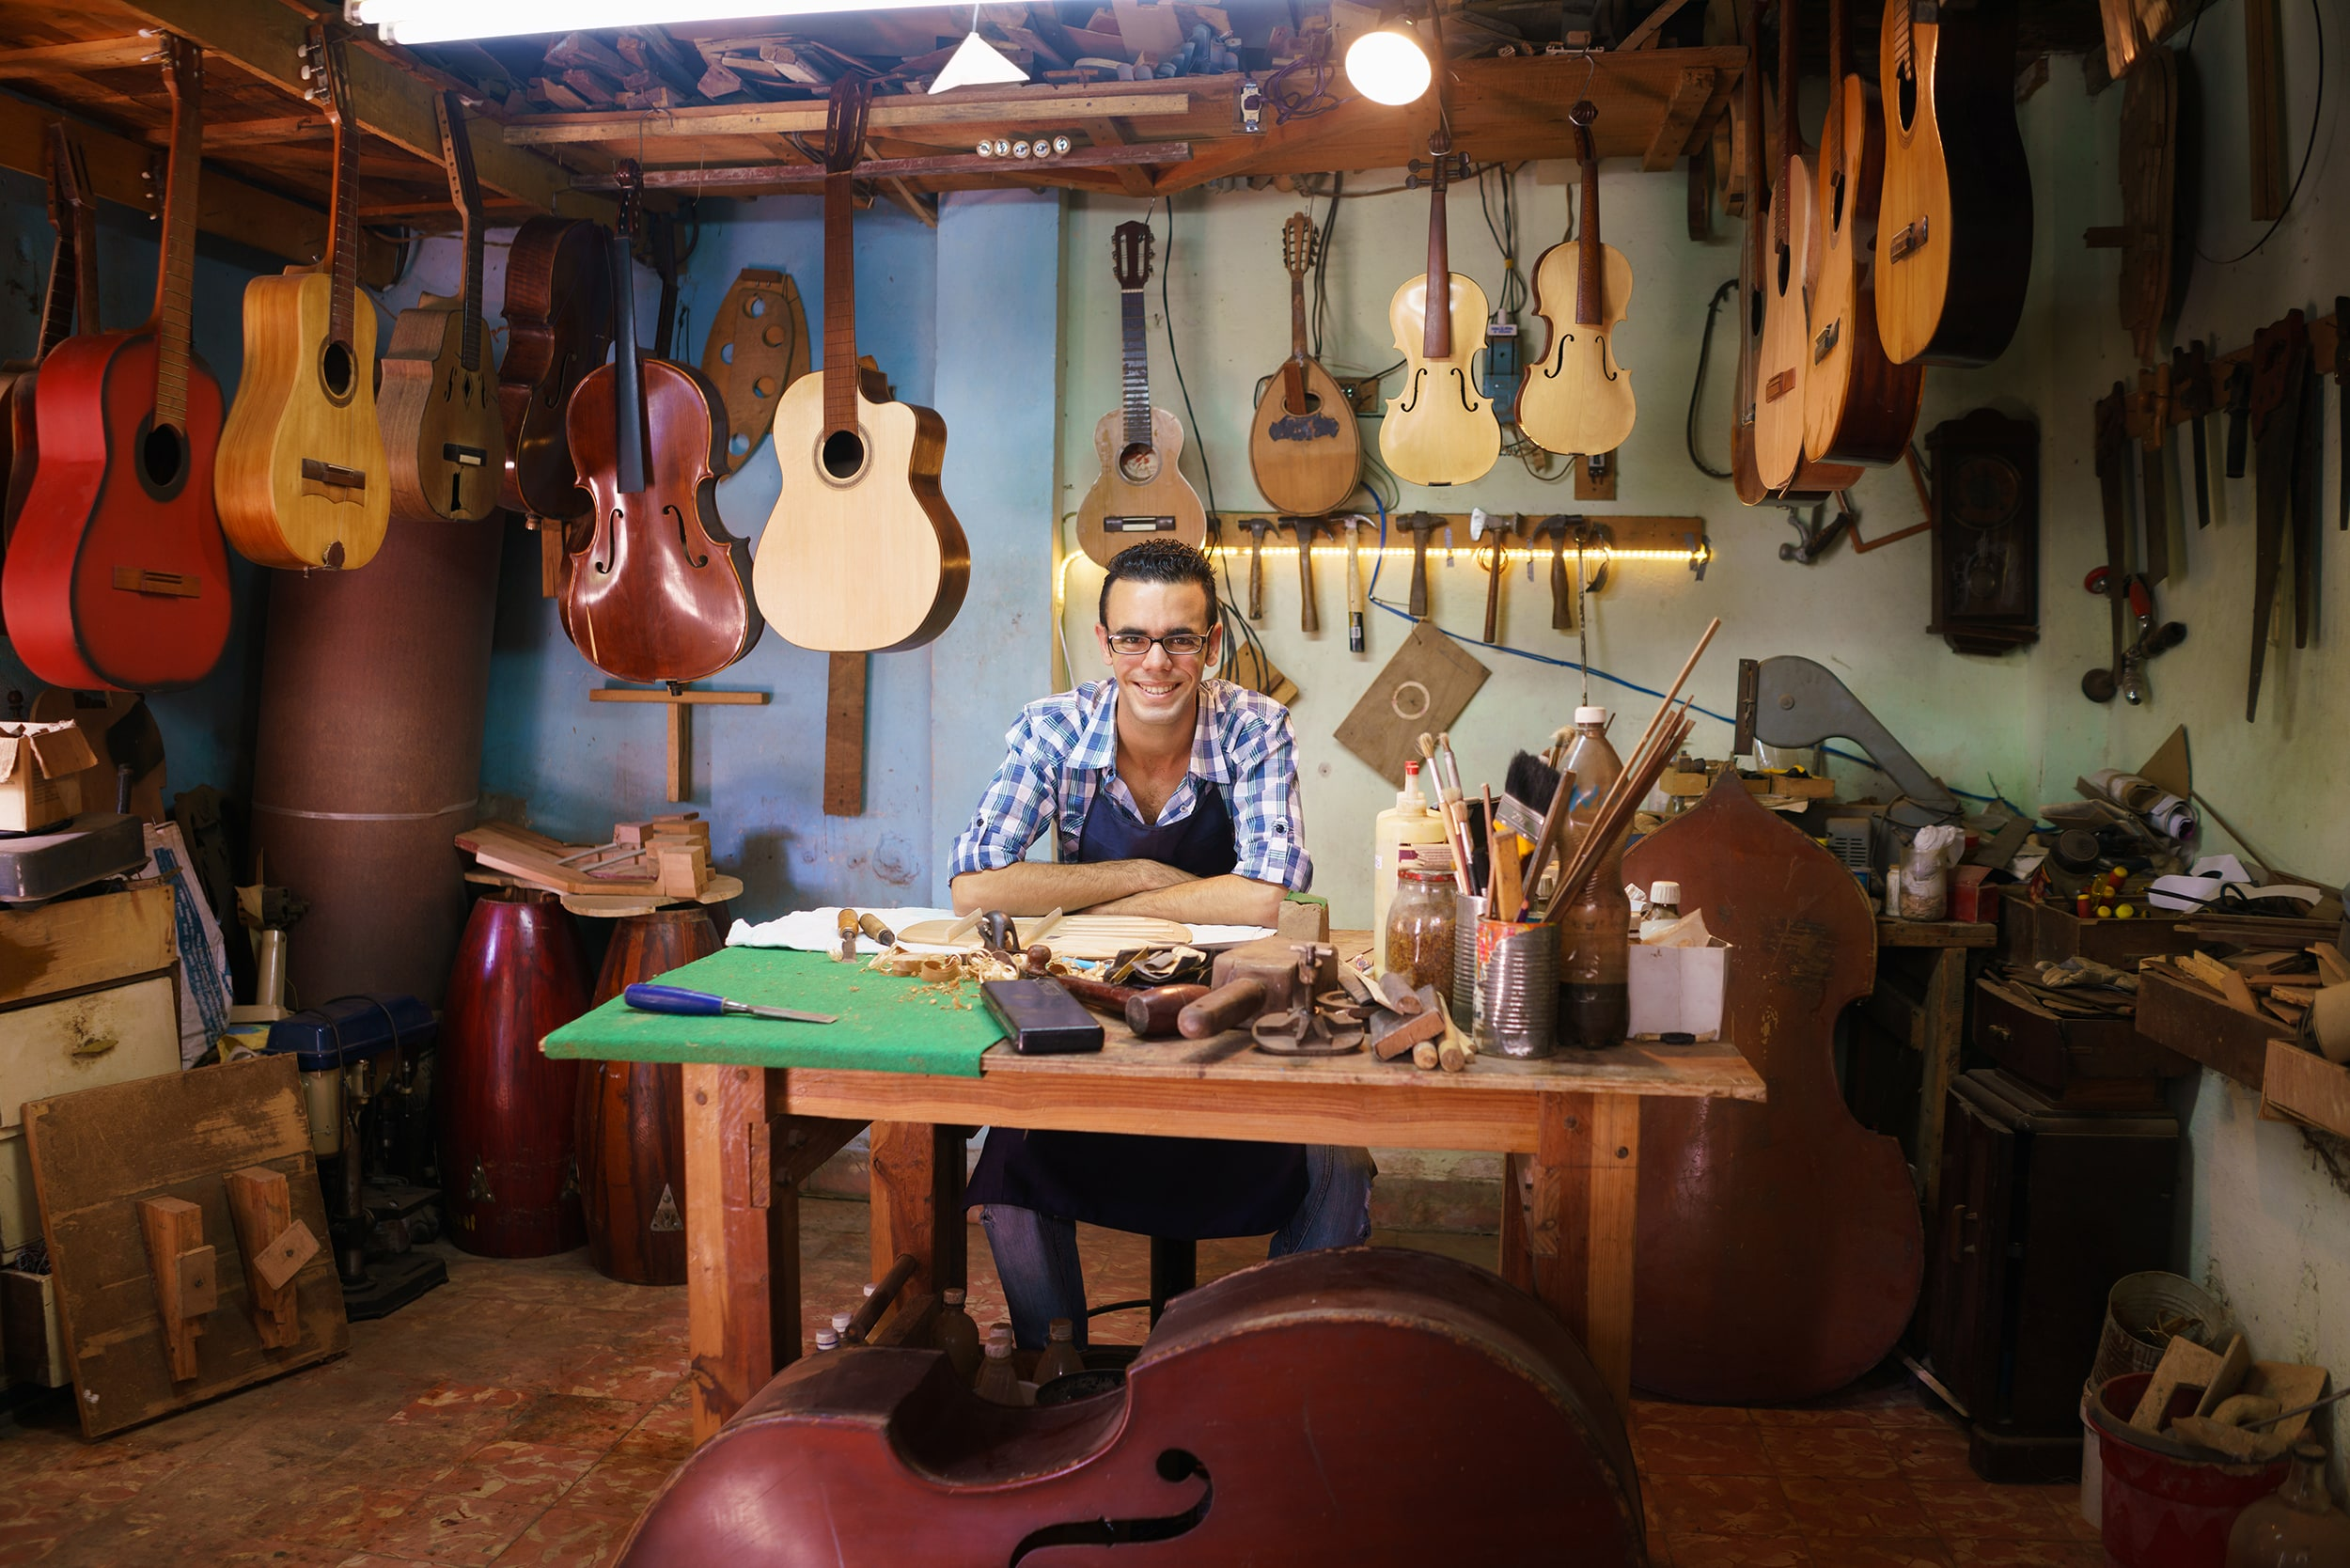 Man in Luthier Shop